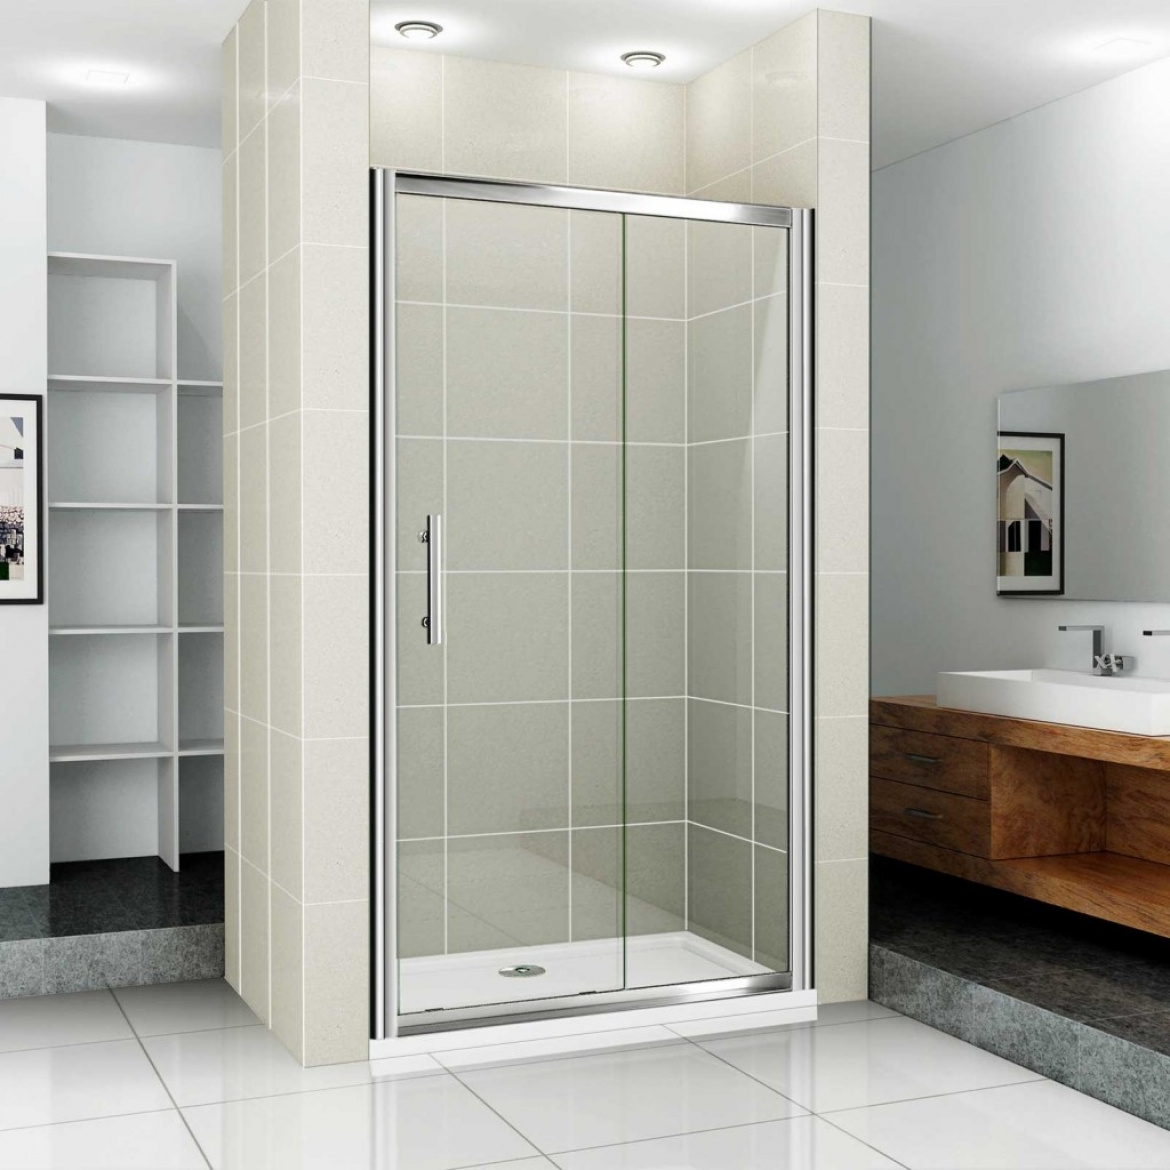 Wall to wall sliding shower screen [1250 mm]